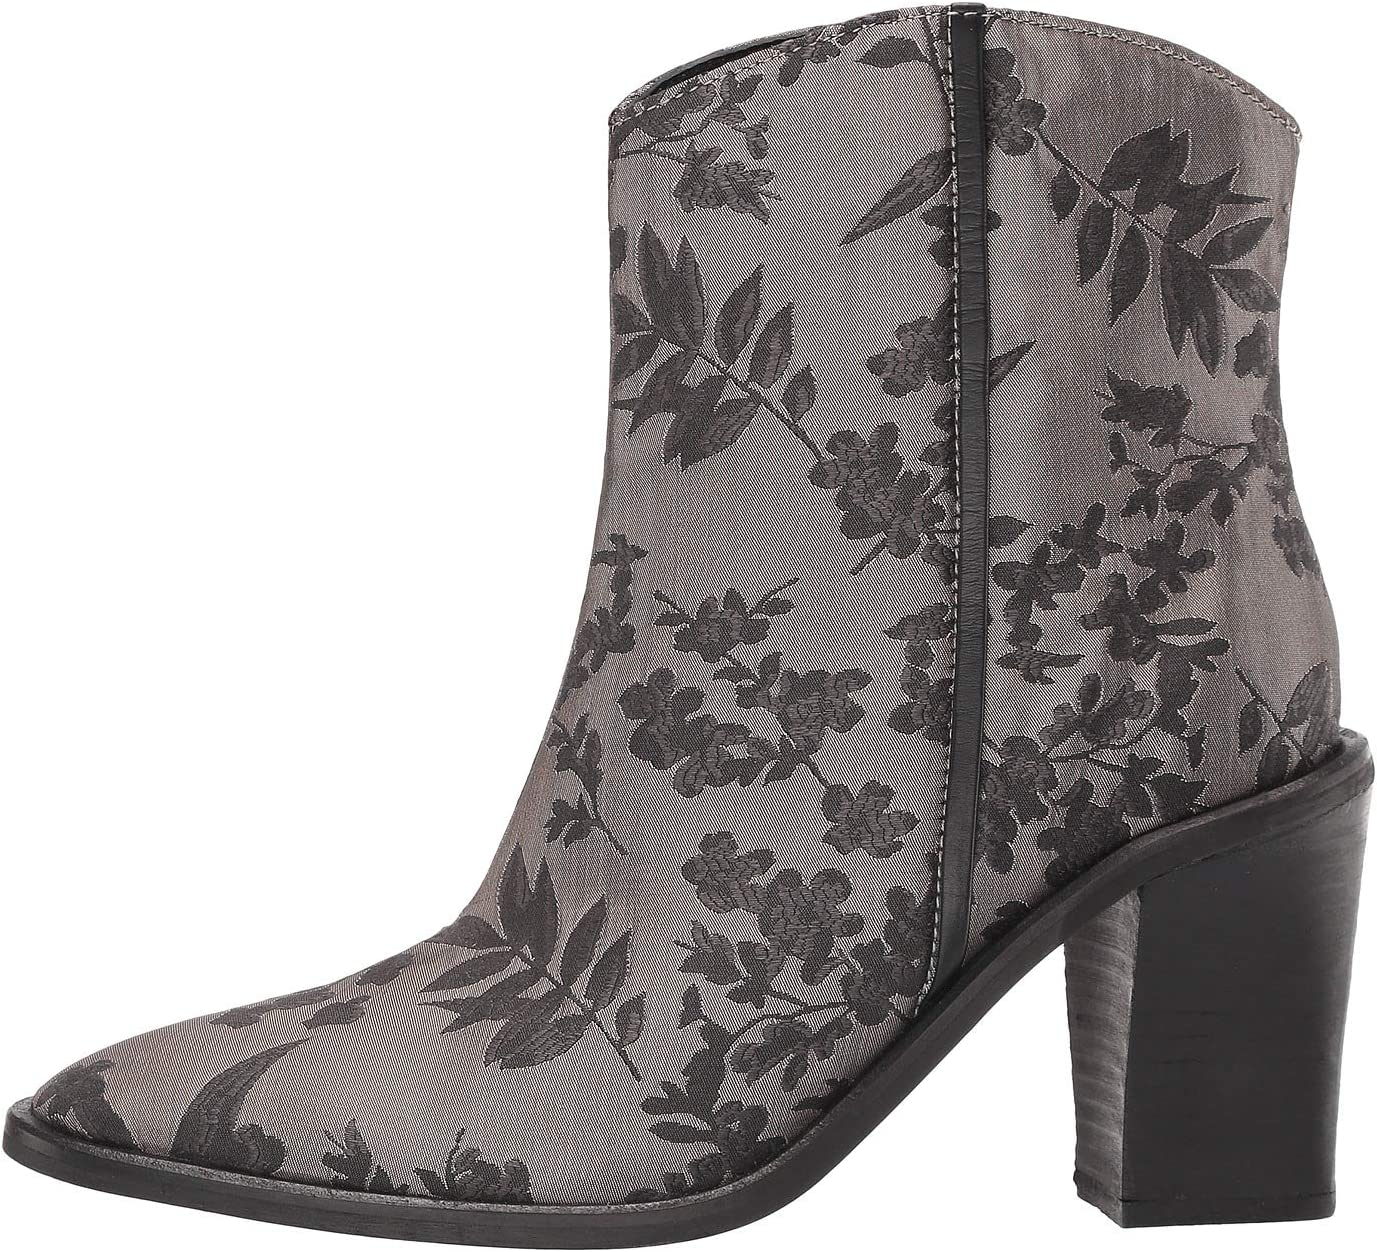 Free People Barclay Brocade Ankle Boot   Women's shoes   2020 Newest